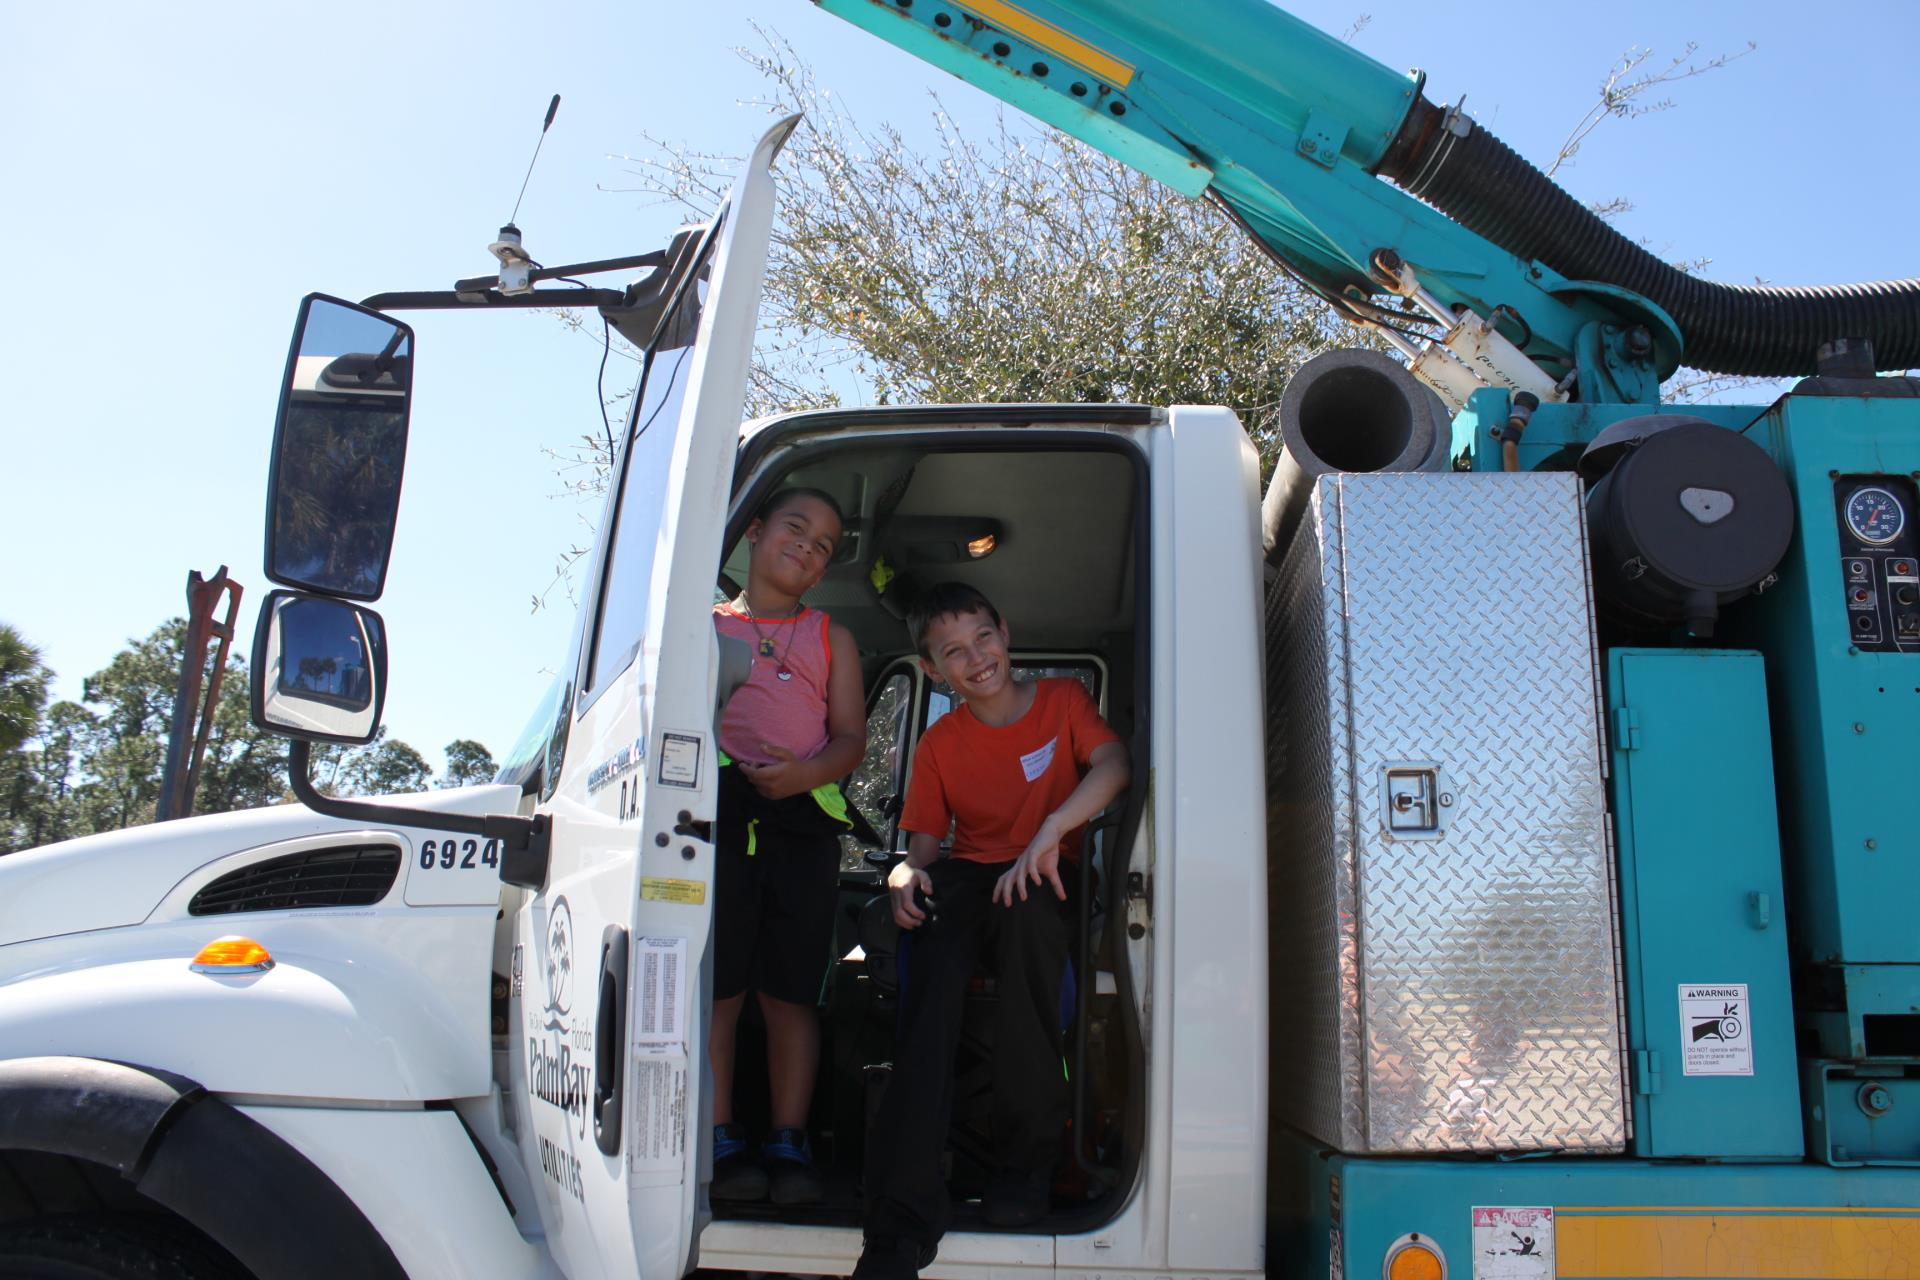 Photo of the Vac-Con truck with Children exploring inside